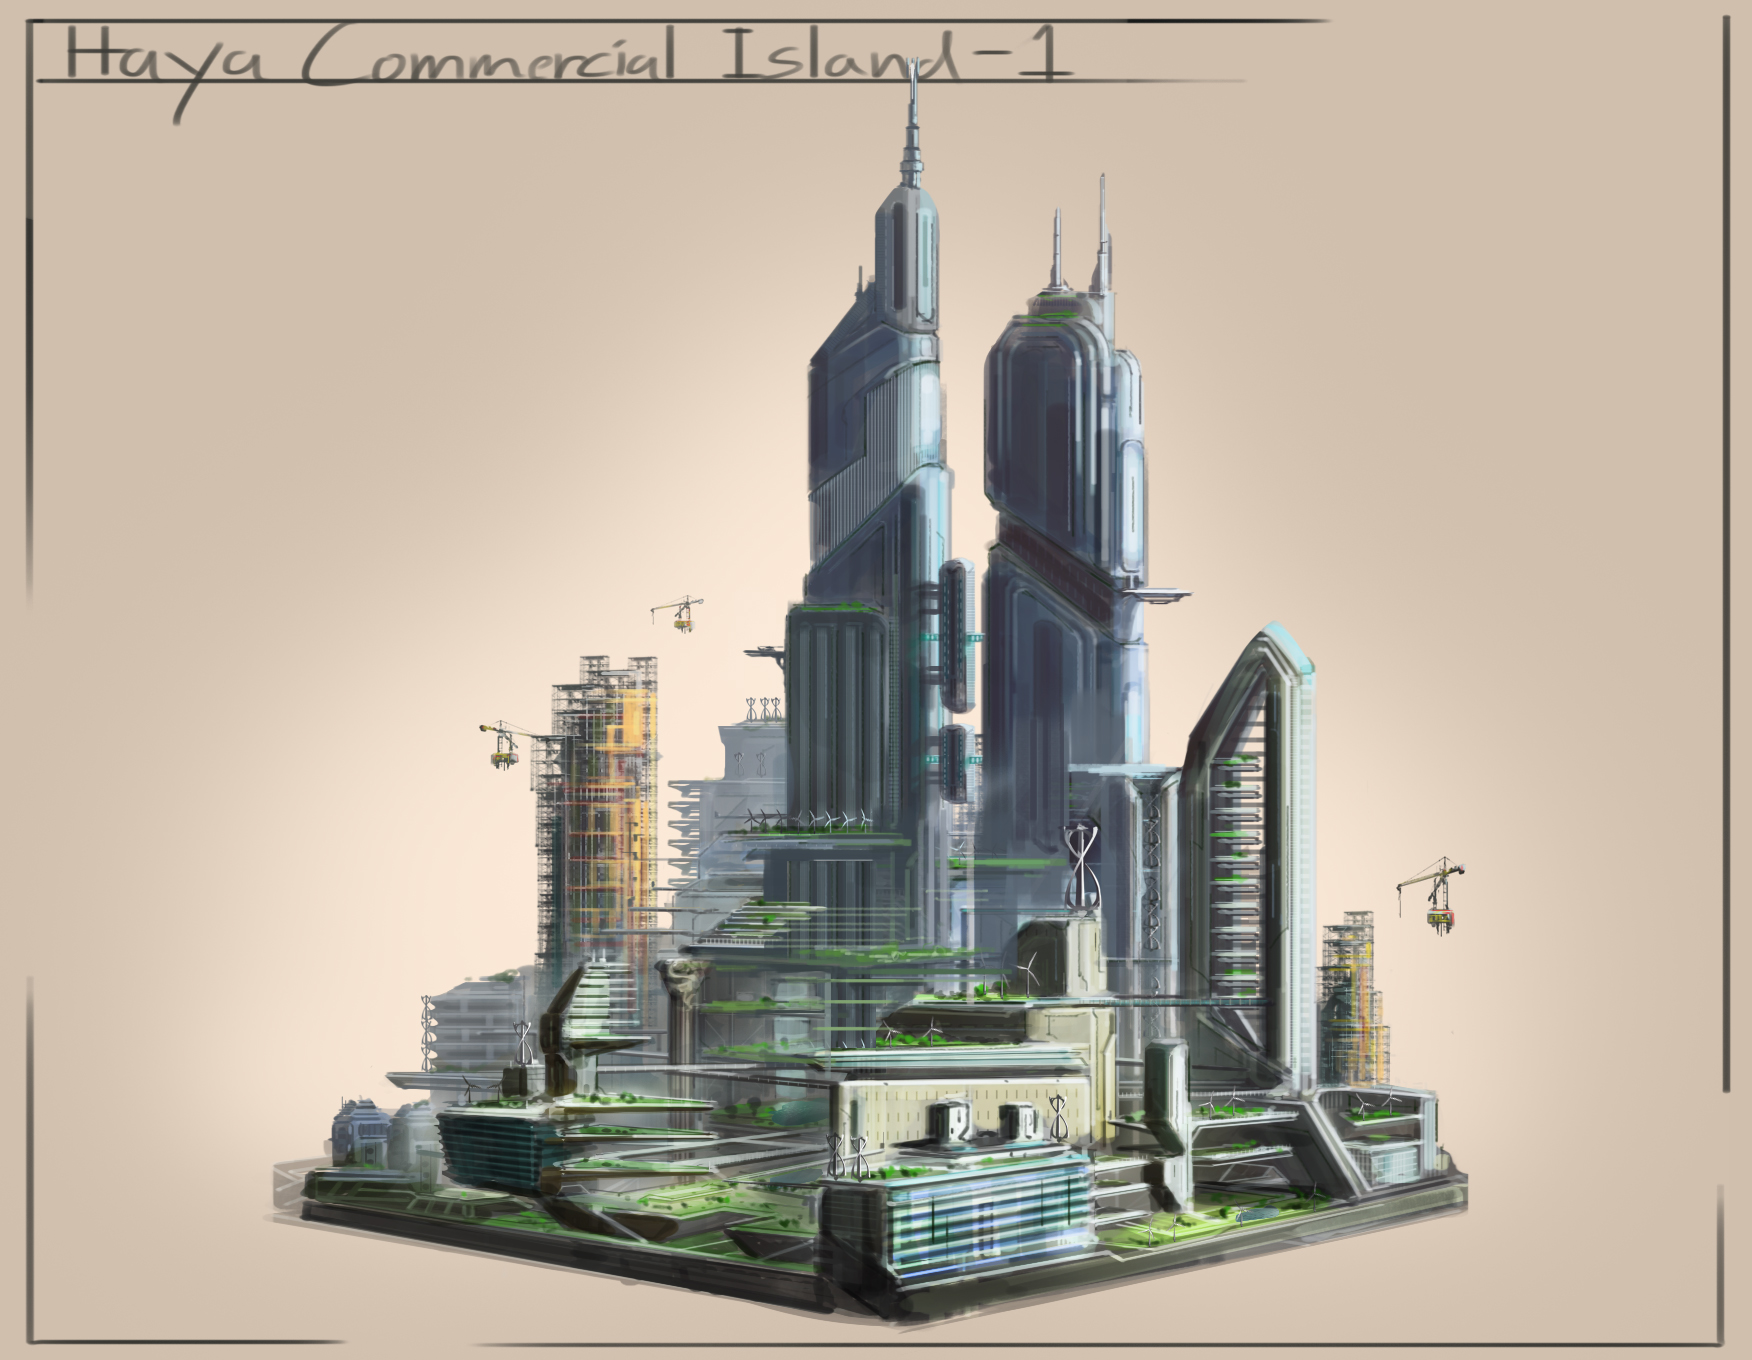 City Sketches - Commerical Island Edit - Towers Moved.jpg